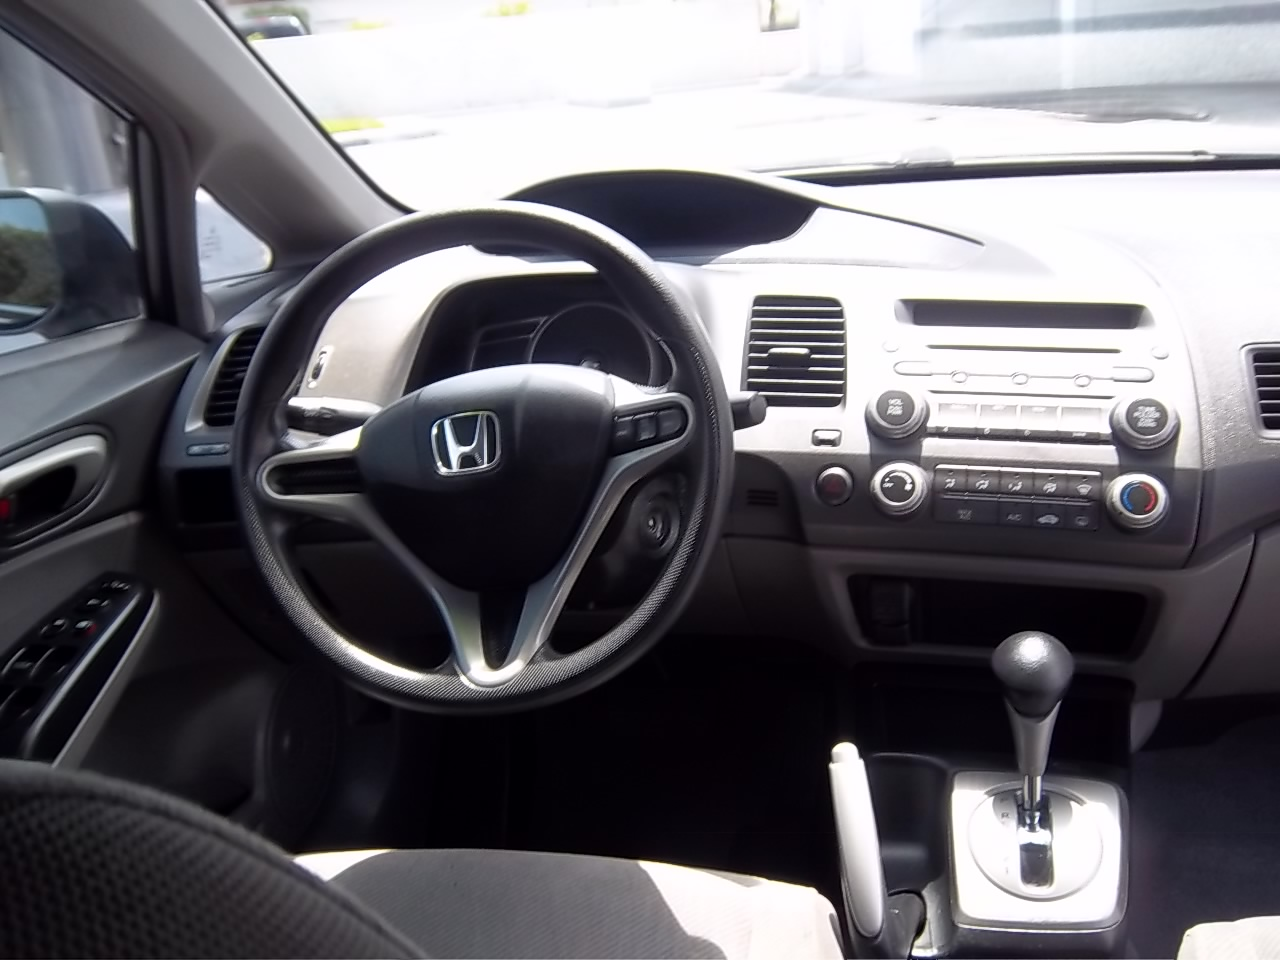 2010 Honda Civic Interior Pictures Cargurus